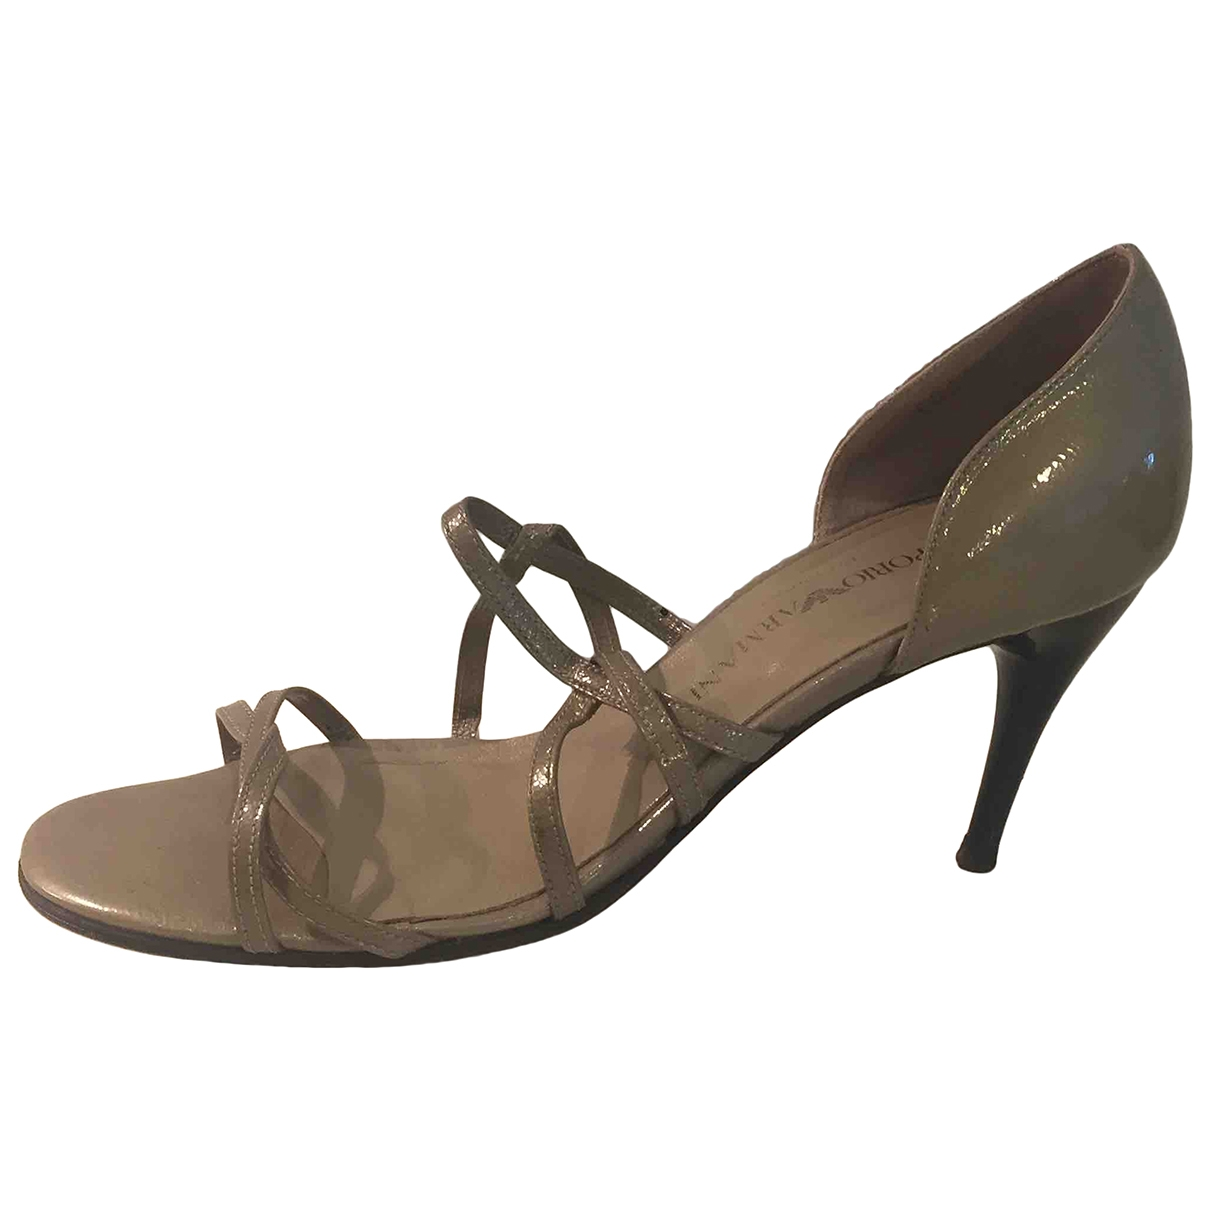 Emporio Armani \N Grey Patent leather Heels for Women 37 EU